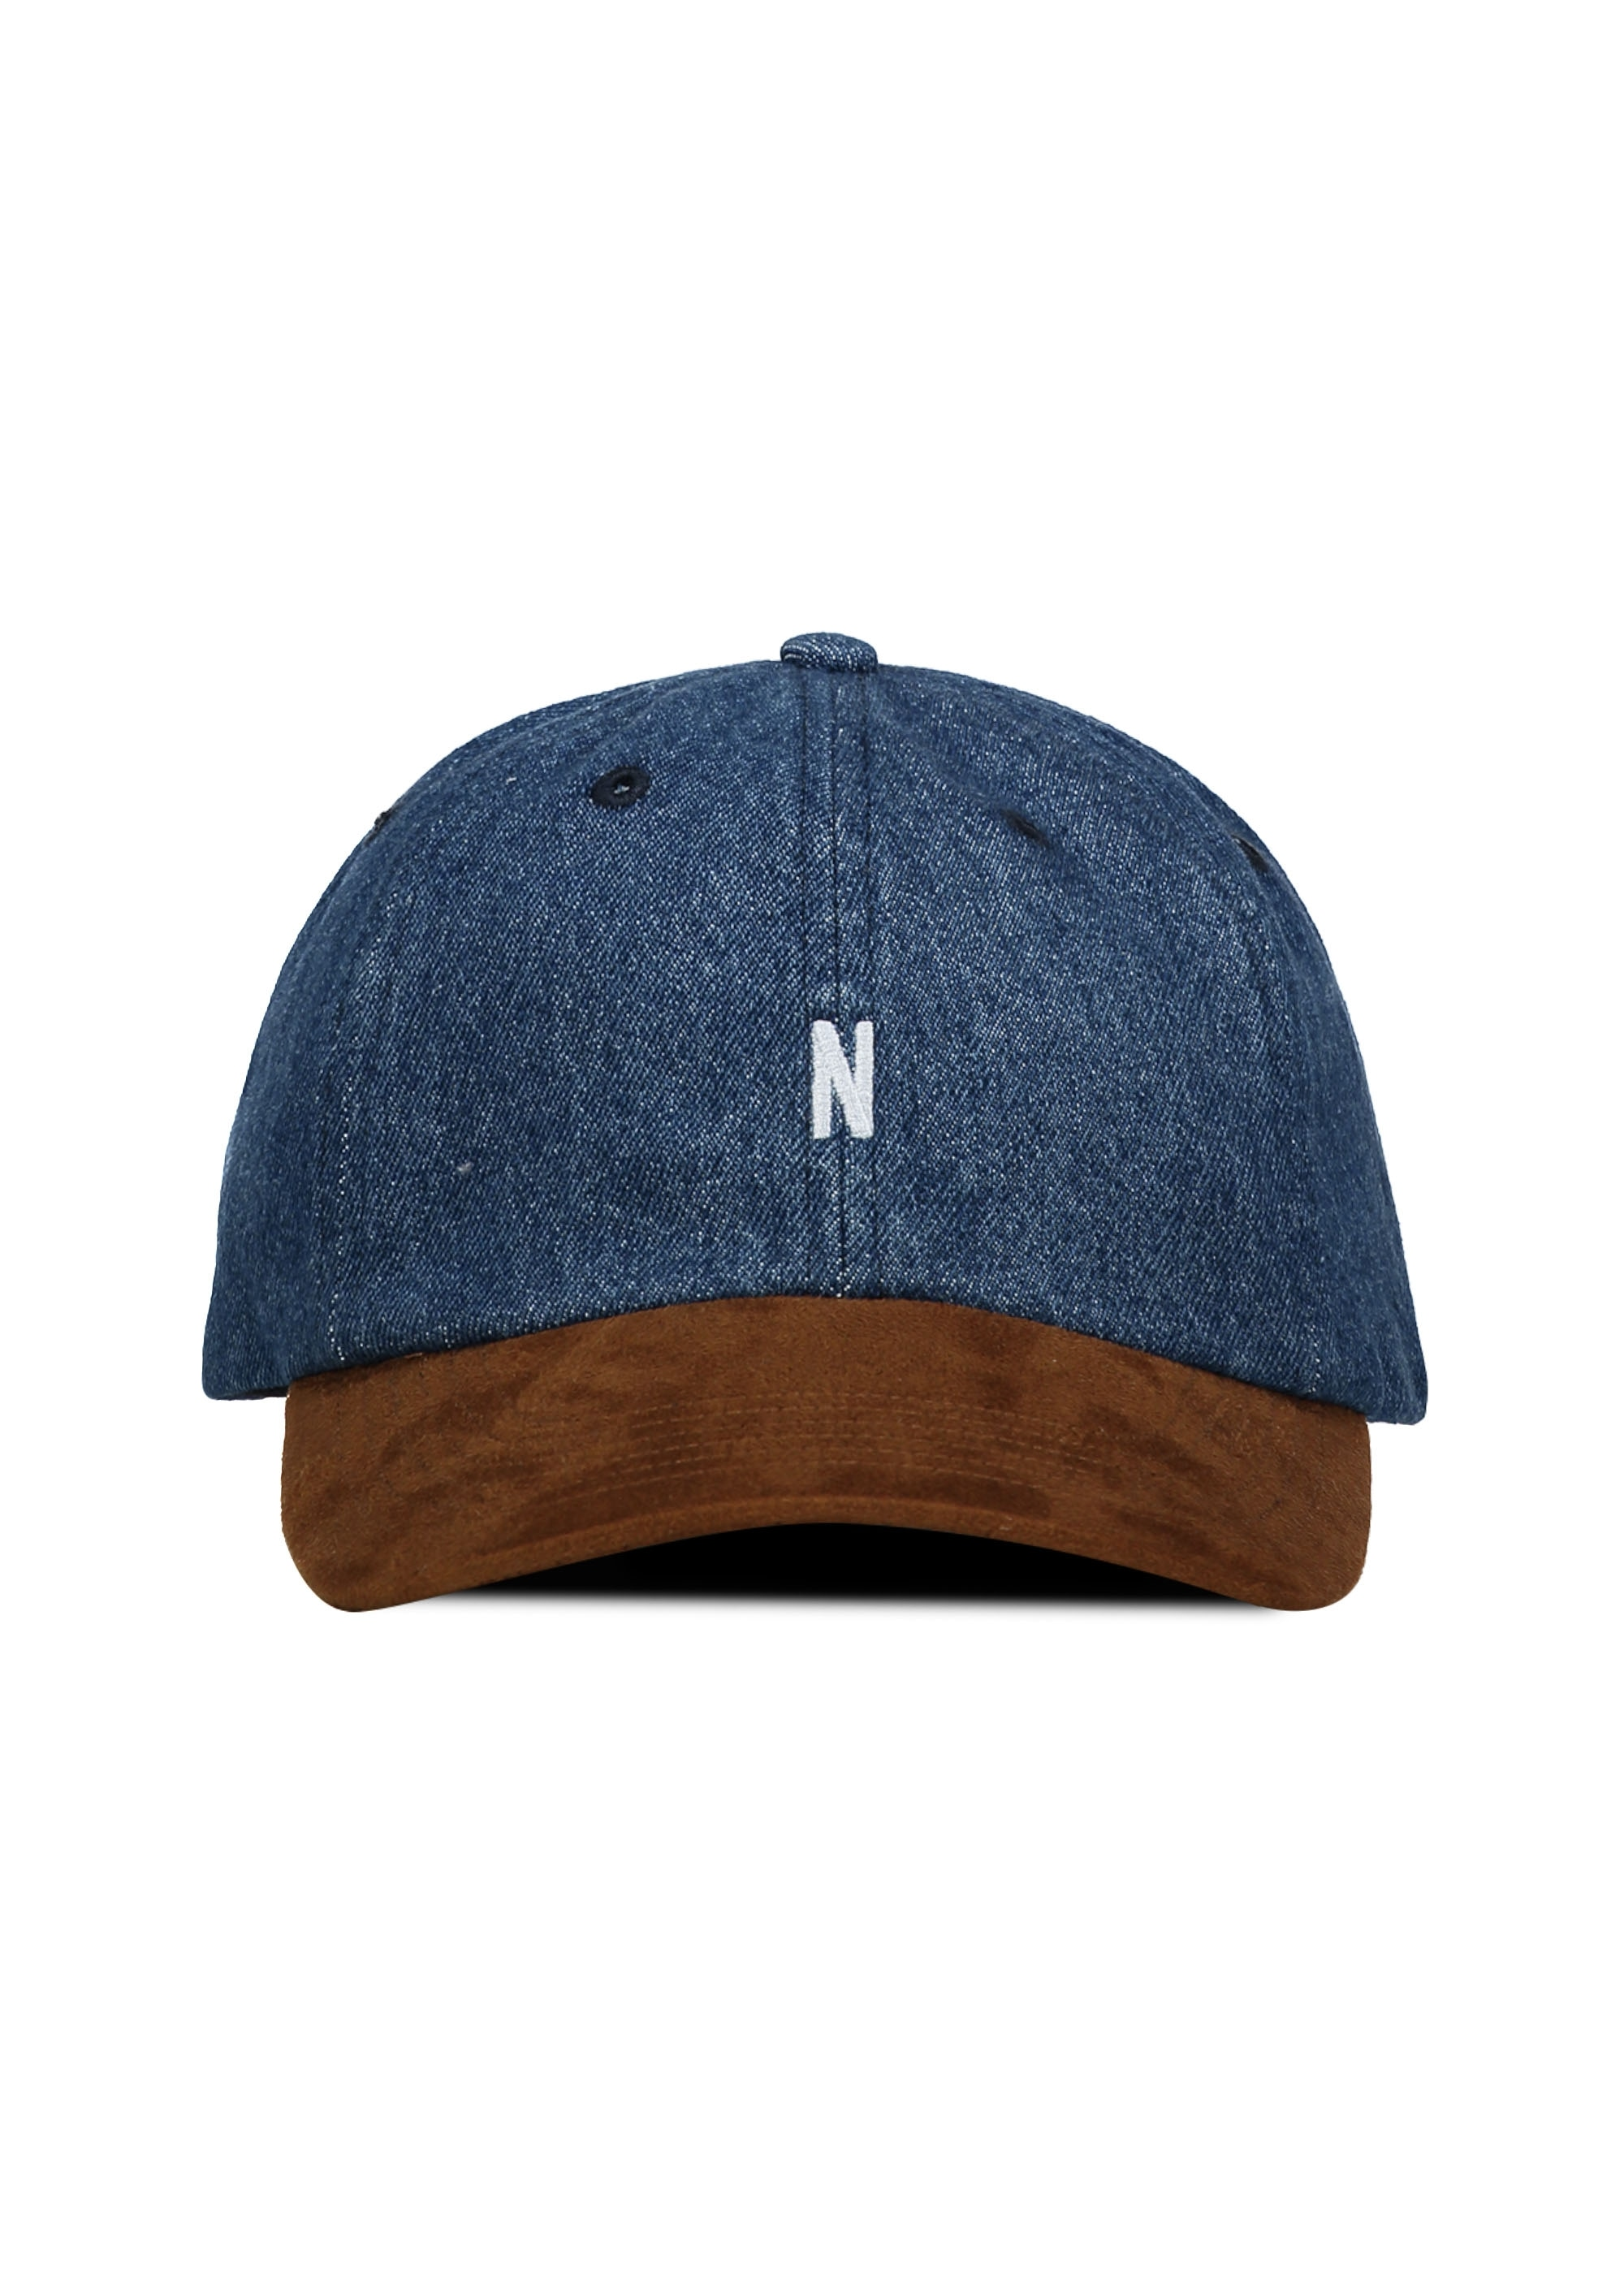 Norse Projects Denim Sports Cap - Indigo - Triads Mens from Triads UK 6f98227ad9f9